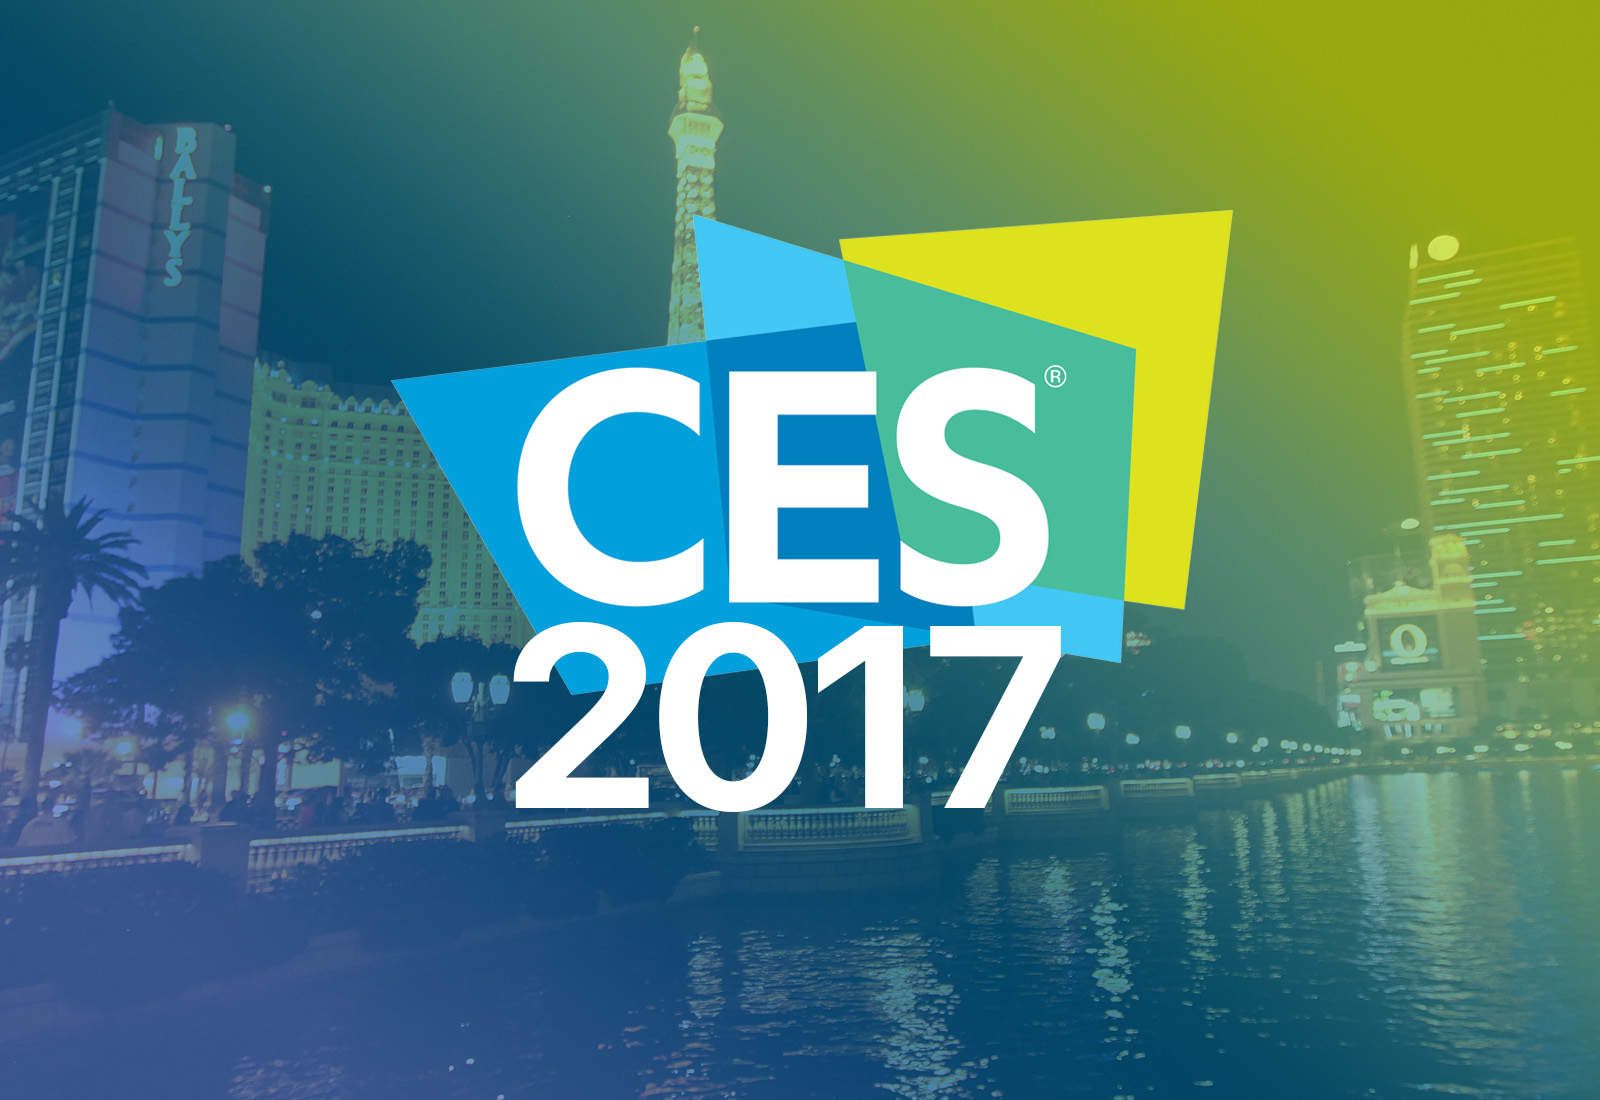 Each year at CES, tech's biggest players show off their latest, greatest gear. (Except for Apple, of course.)